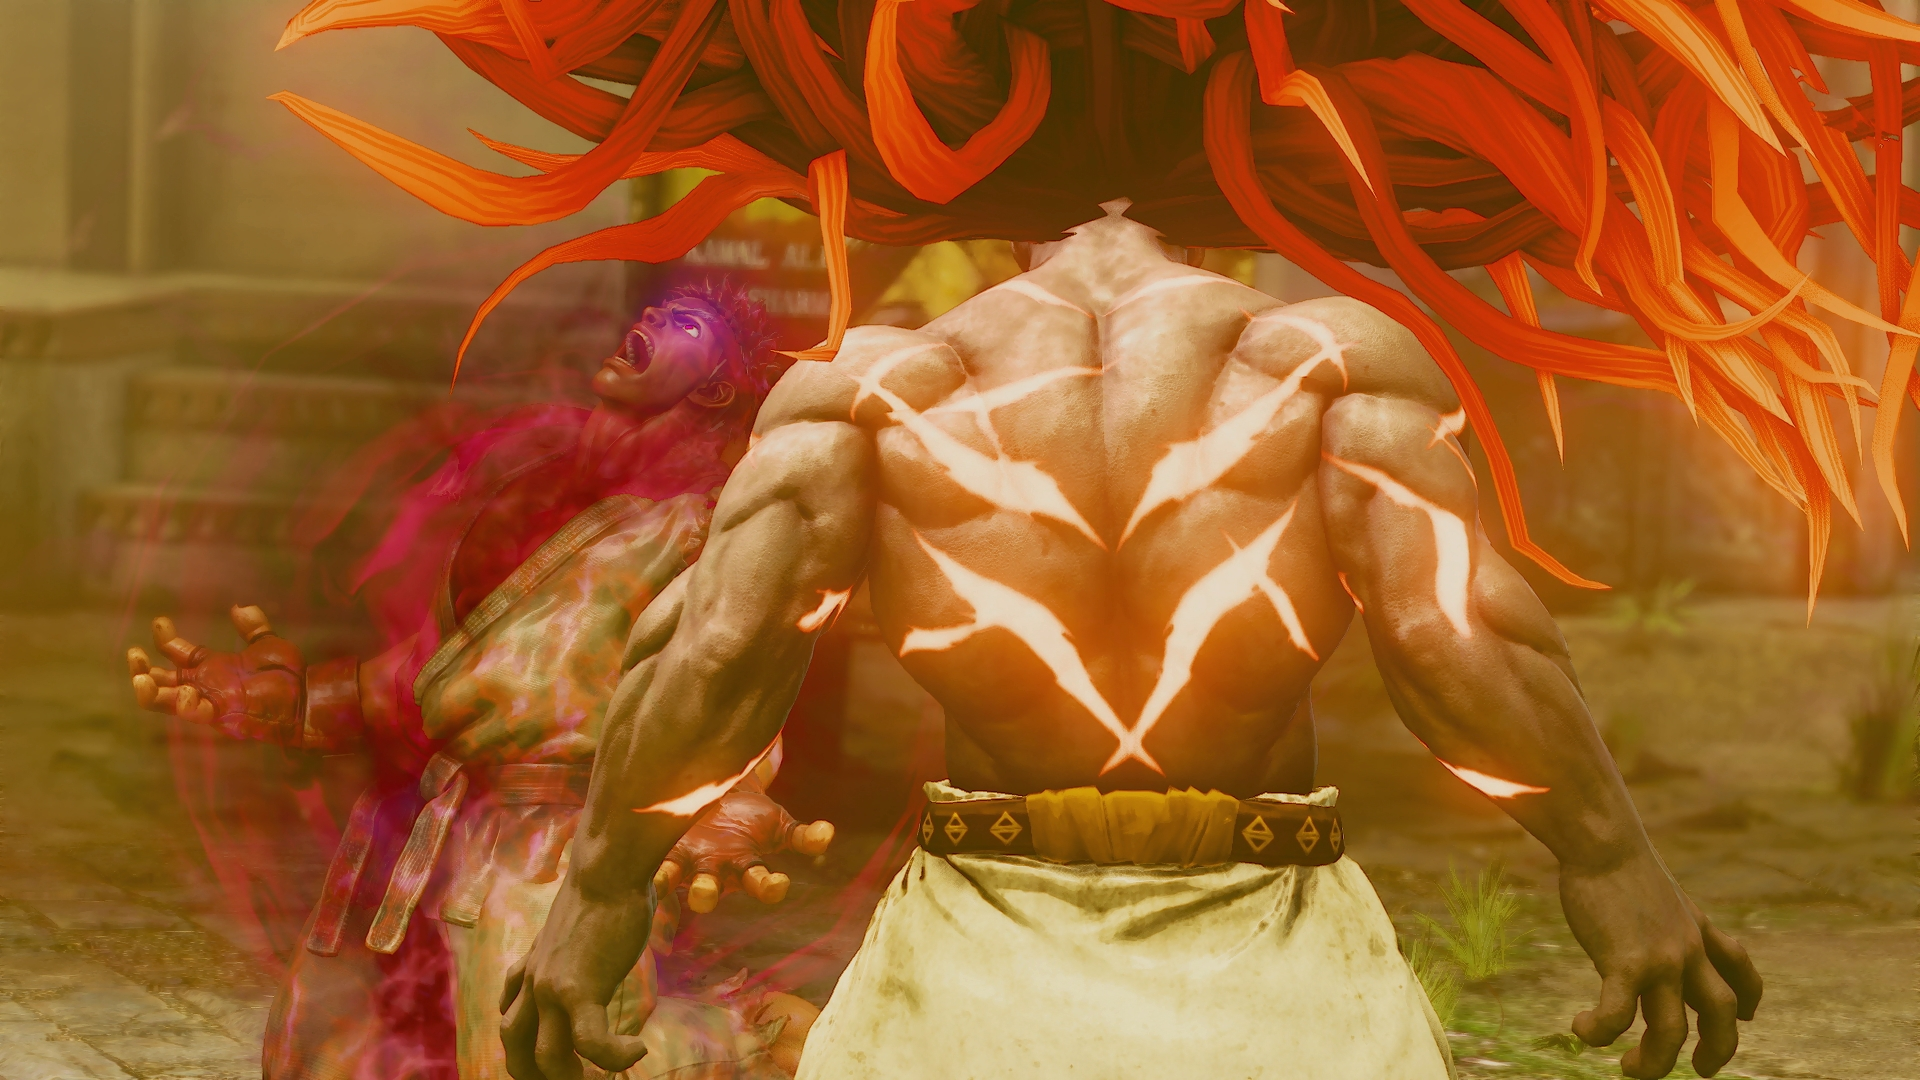 Street-Fighter-V-a-shadow-falls-screenshot-004